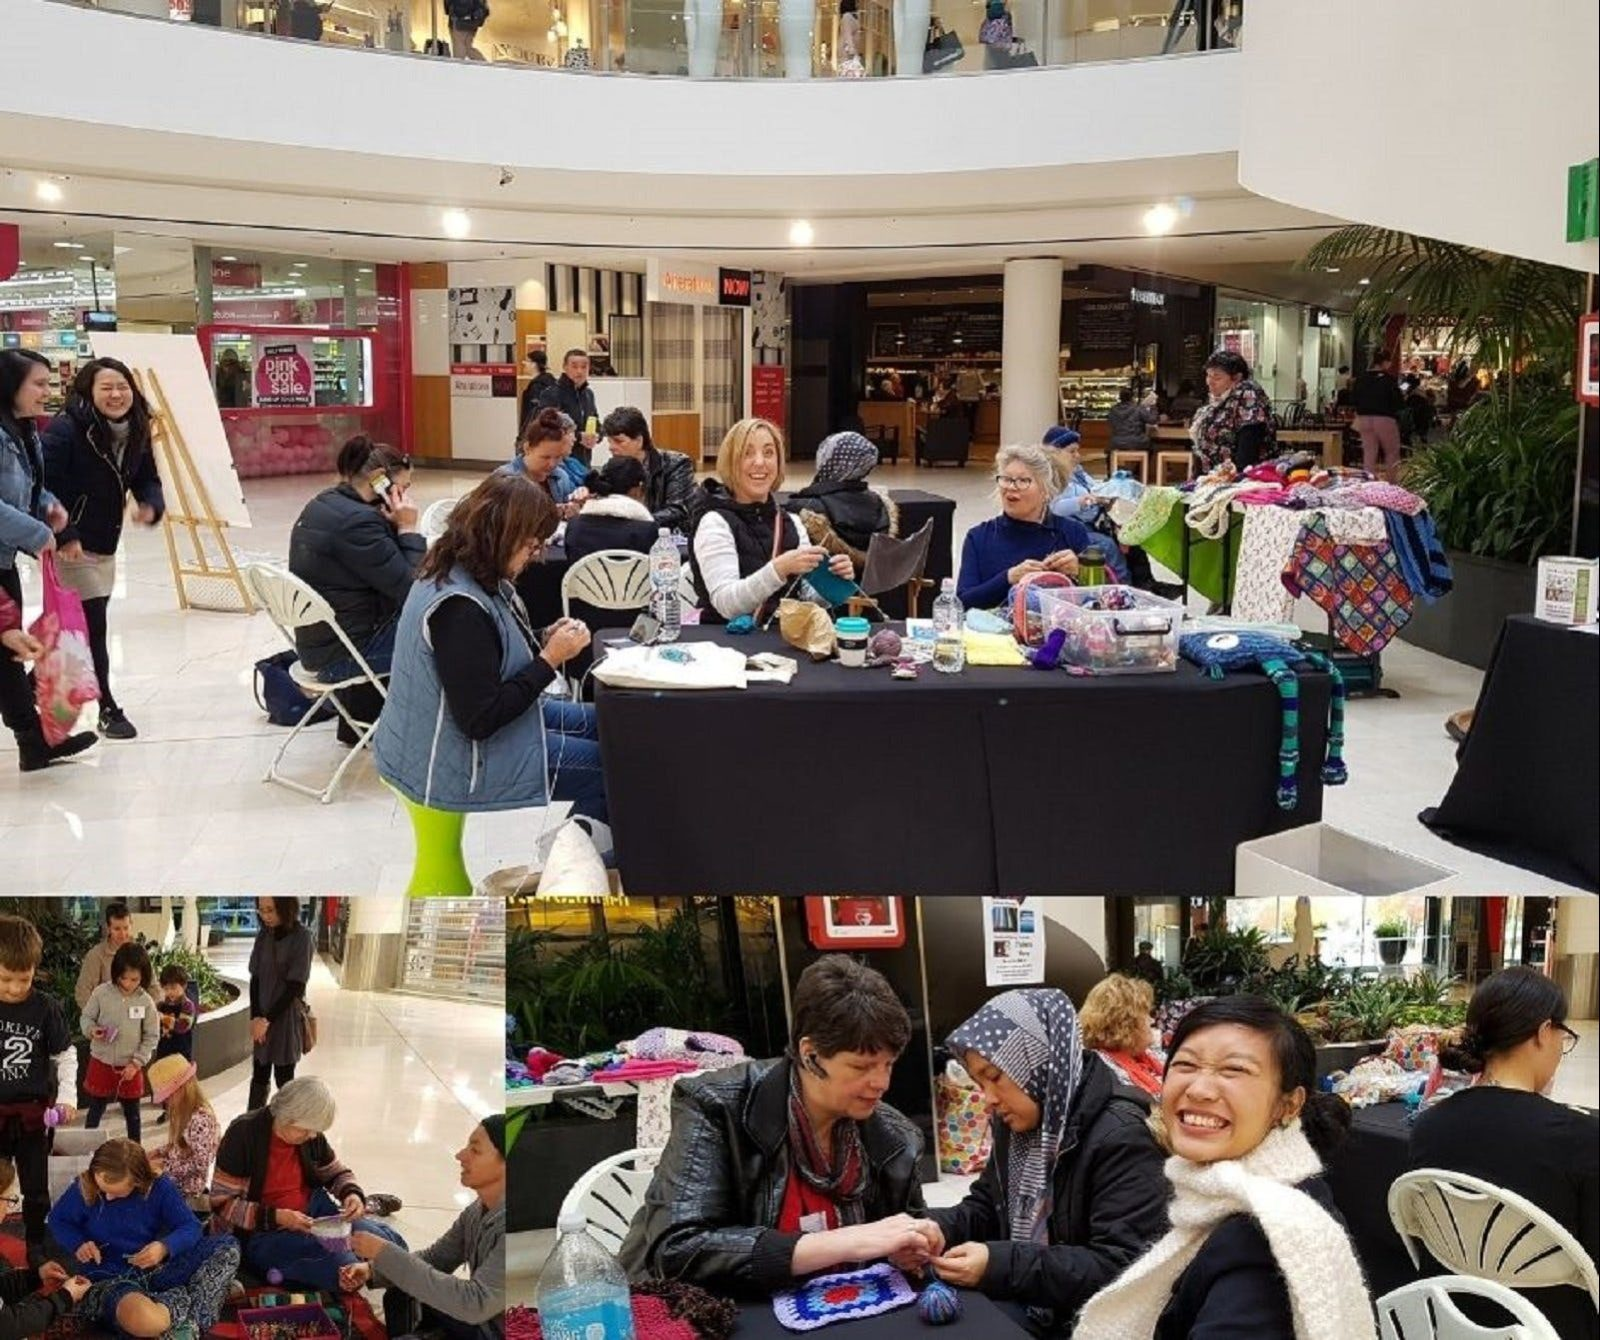 A group knitting in a shopping centre